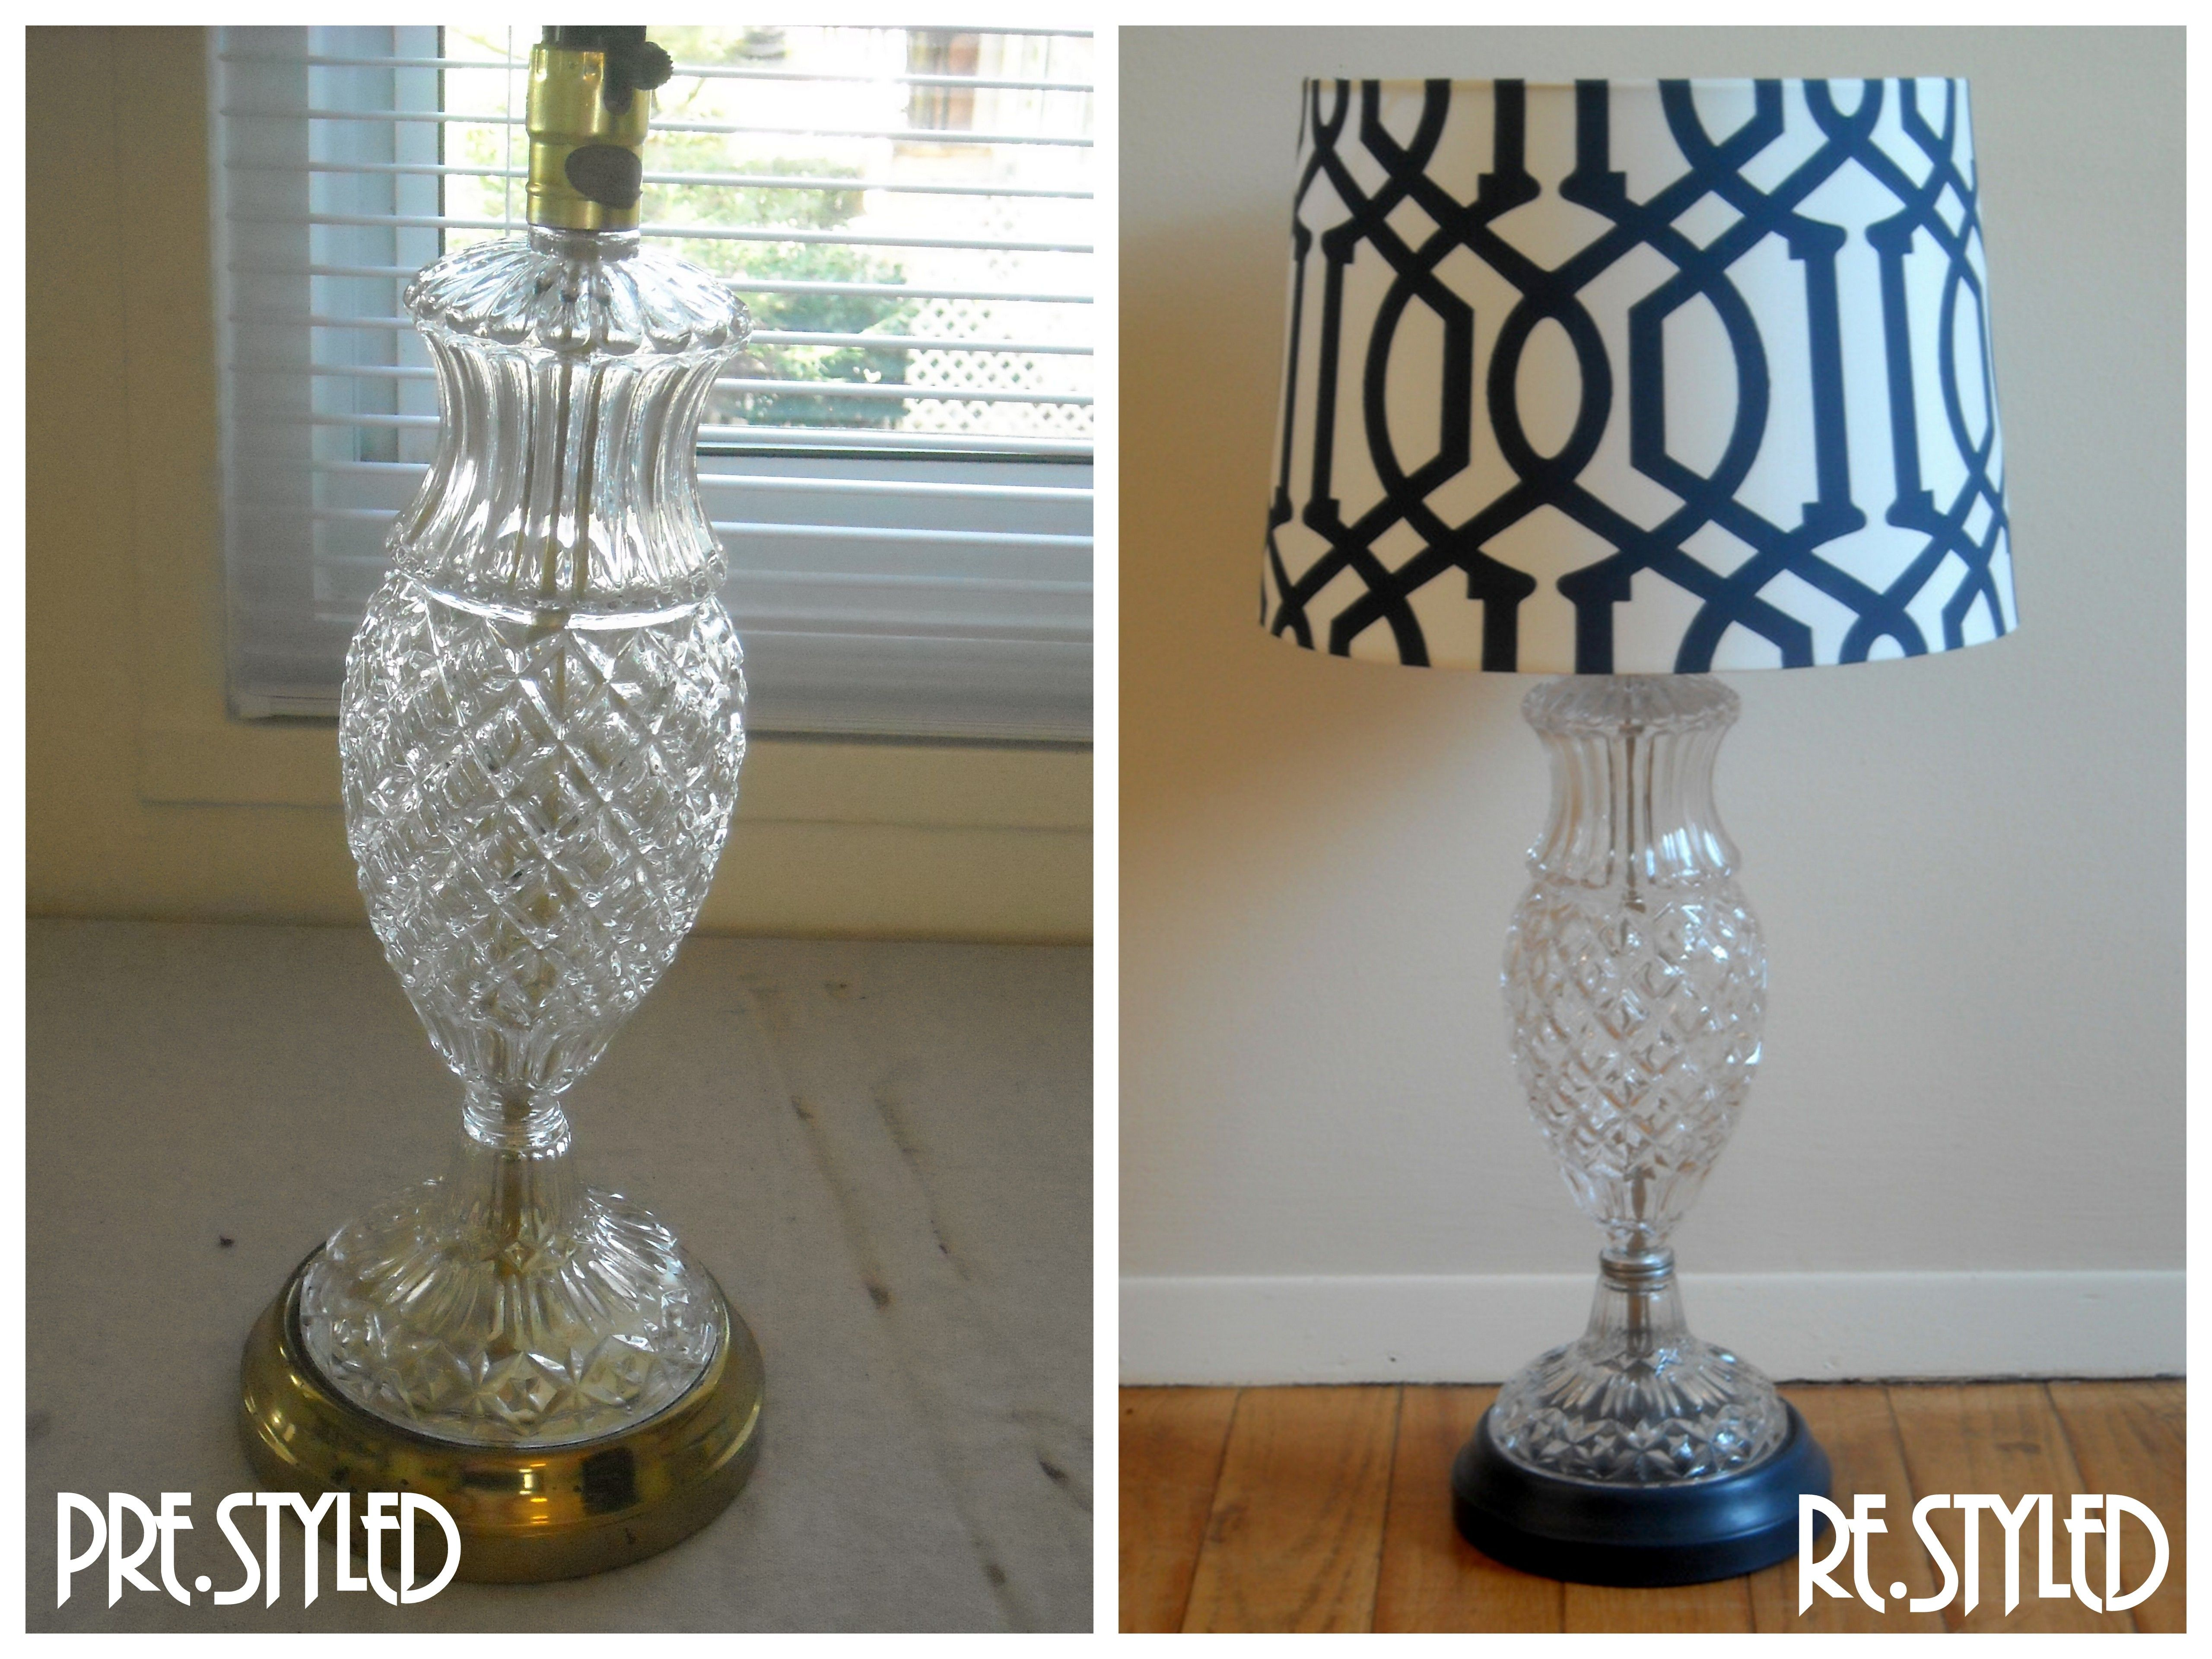 Vintage Crystal Lamp Re Styled With Chalk Paint By Annie Sloan